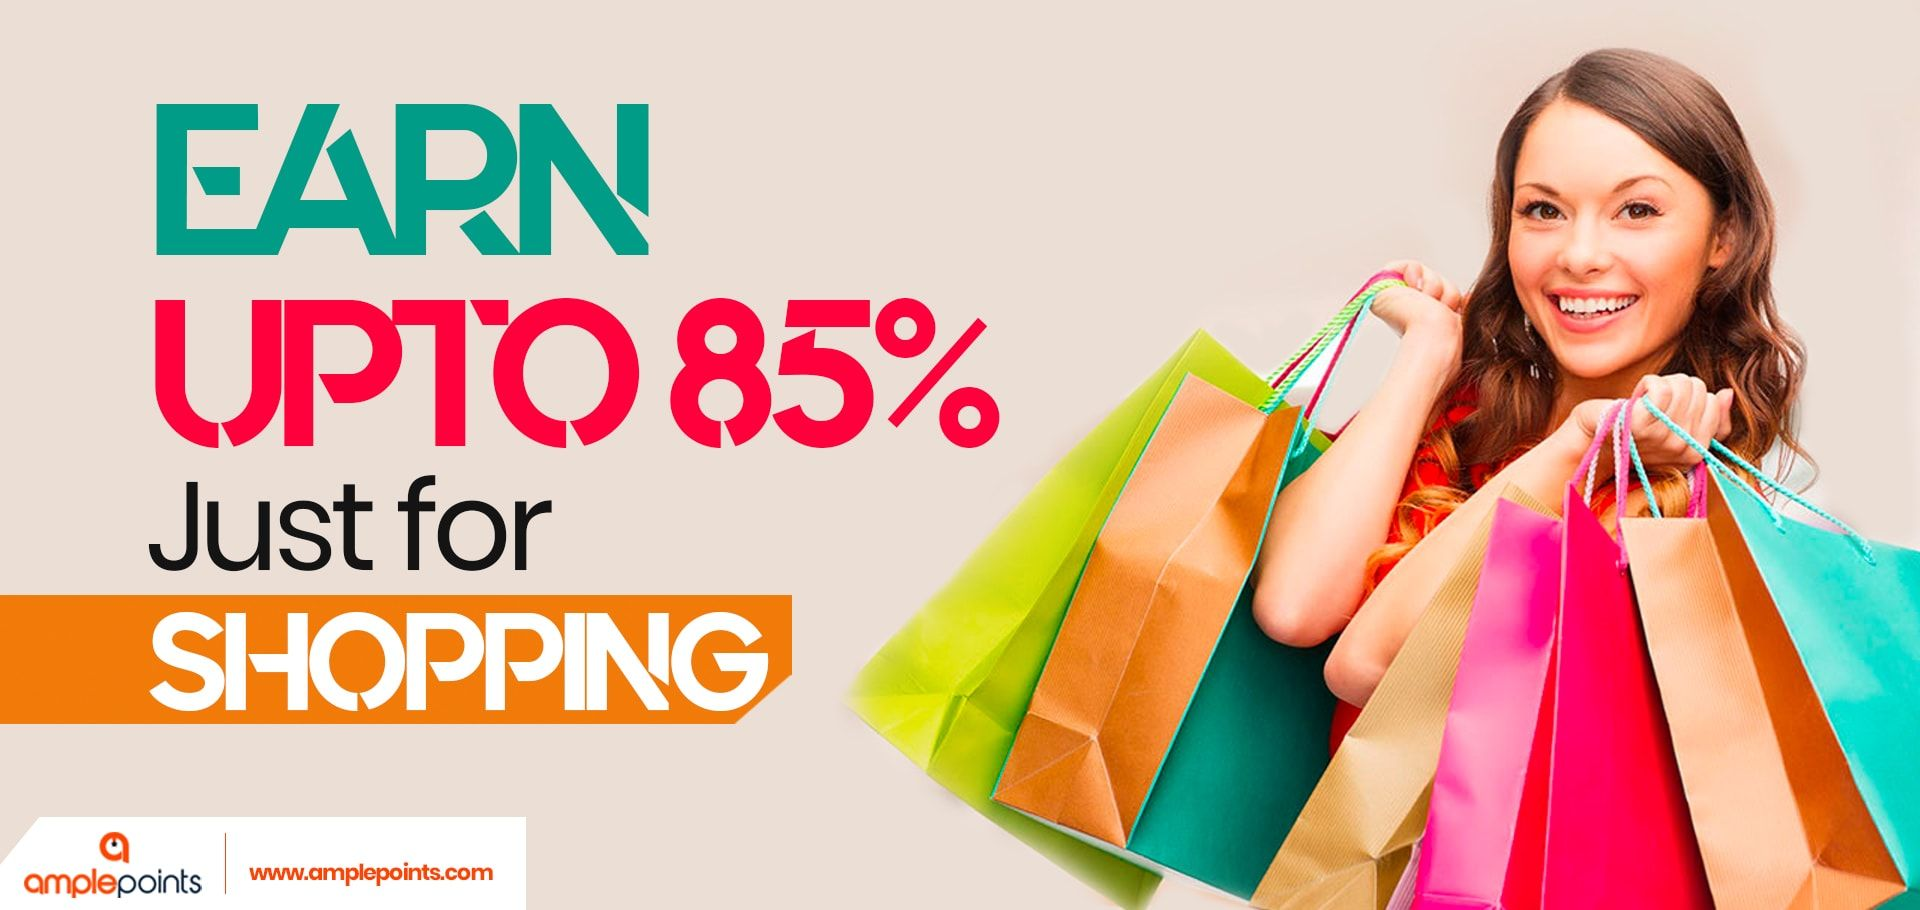 Earn Upto 85 Just for Shopping ..